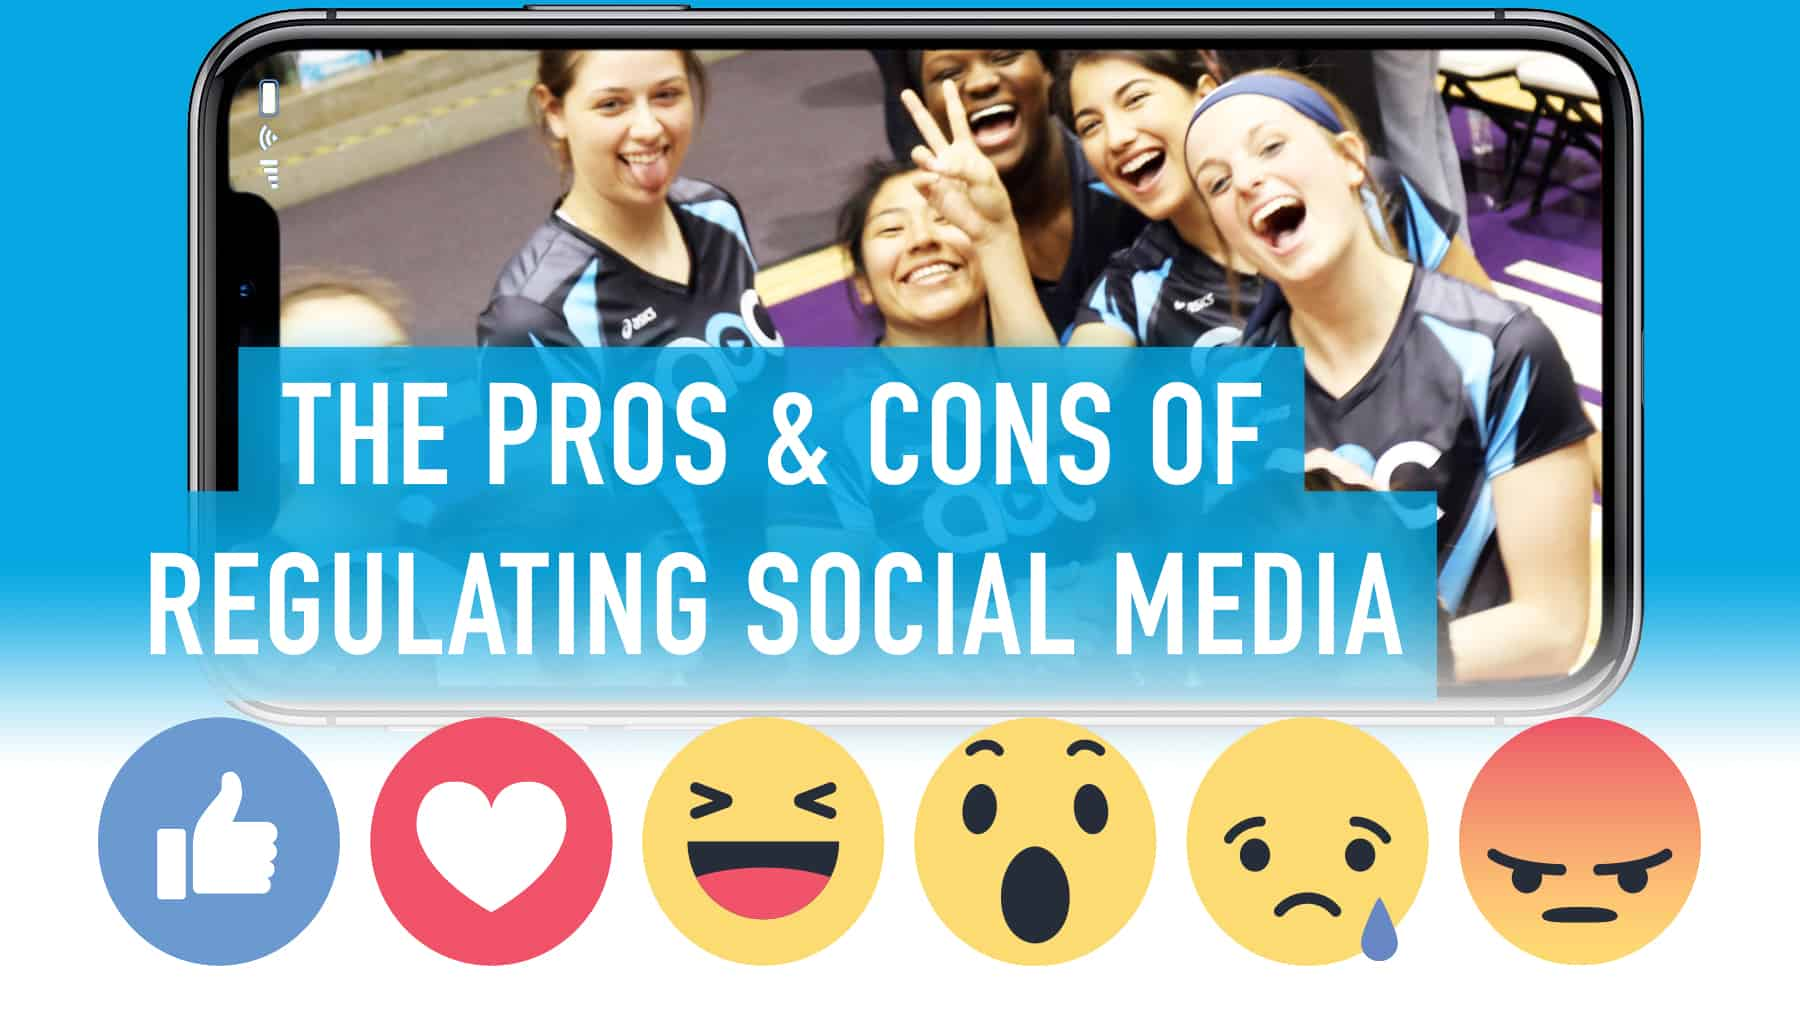 The pros and cons of regulating social media